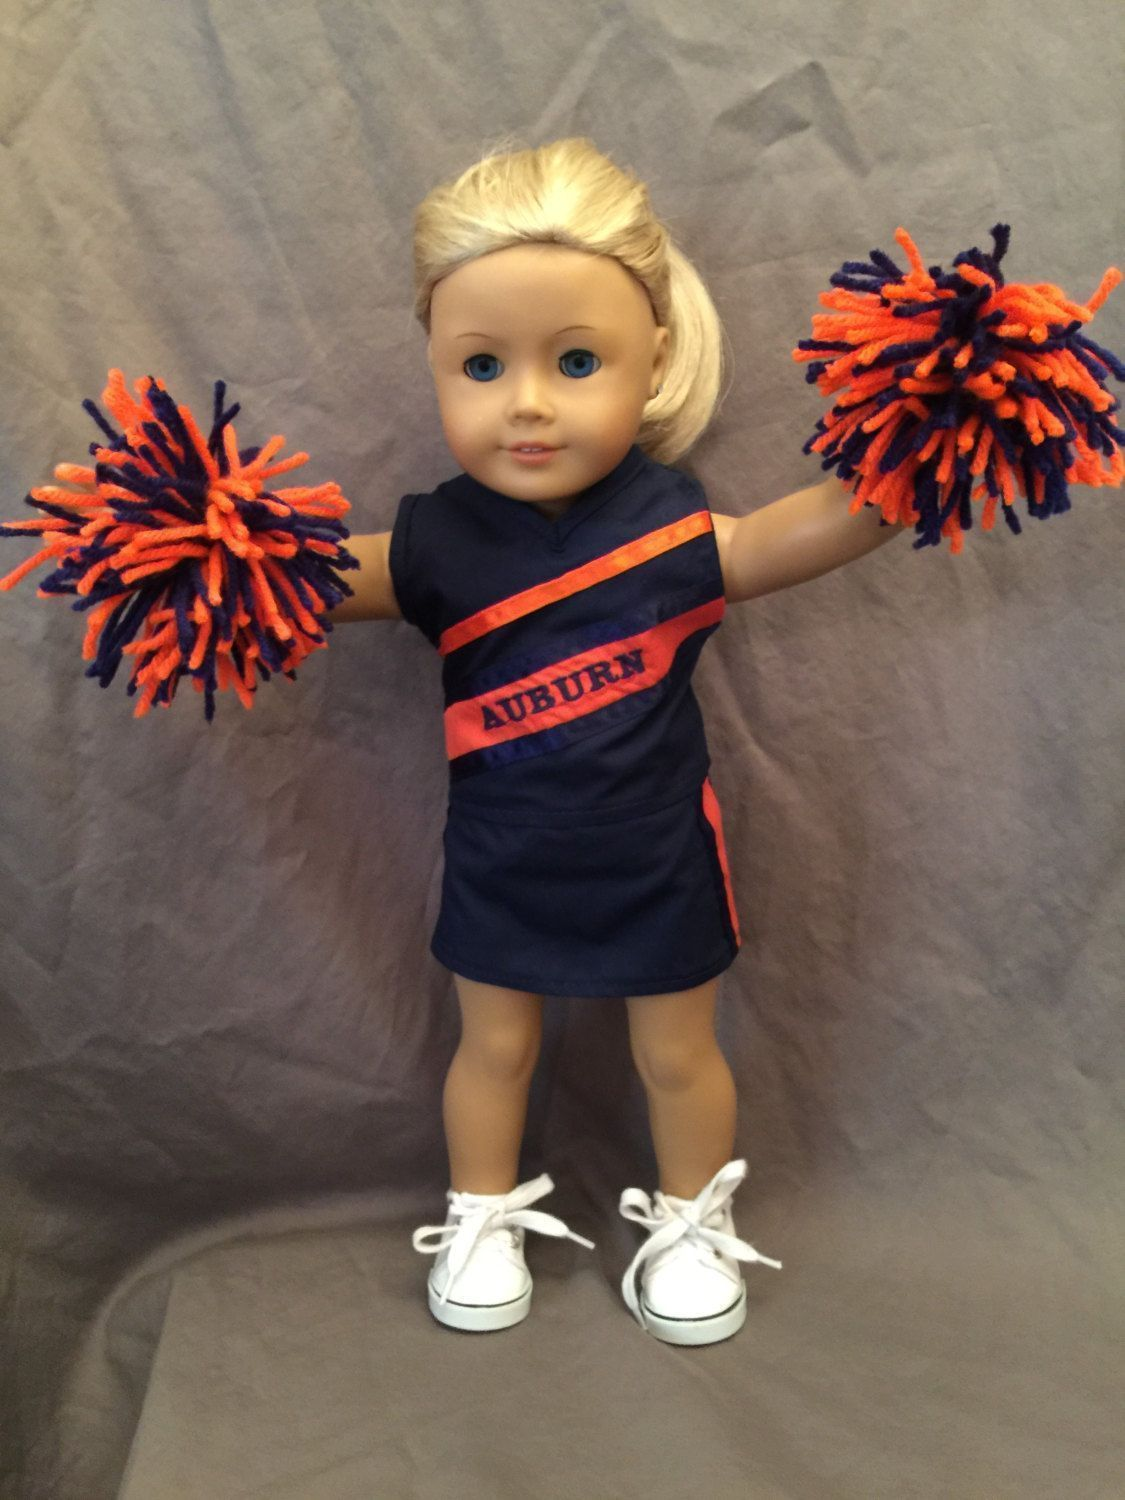 Homemade 18 Inch Doll Clothes Fits Dolls Like American Girl And Similar Dolls… #18inchcheerleaderclothes Homemade 18 Inch Doll Clothes Fits Dolls Like American Girl And Similar Dolls… #18inchcheerleaderclothes Homemade 18 Inch Doll Clothes Fits Dolls Like American Girl And Similar Dolls… #18inchcheerleaderclothes Homemade 18 Inch Doll Clothes Fits Dolls Like American Girl And Similar Dolls… #18inchcheerleaderclothes Homemade 18 Inch Doll Clothes Fits Dolls Like American G #18inchcheerleaderclothes